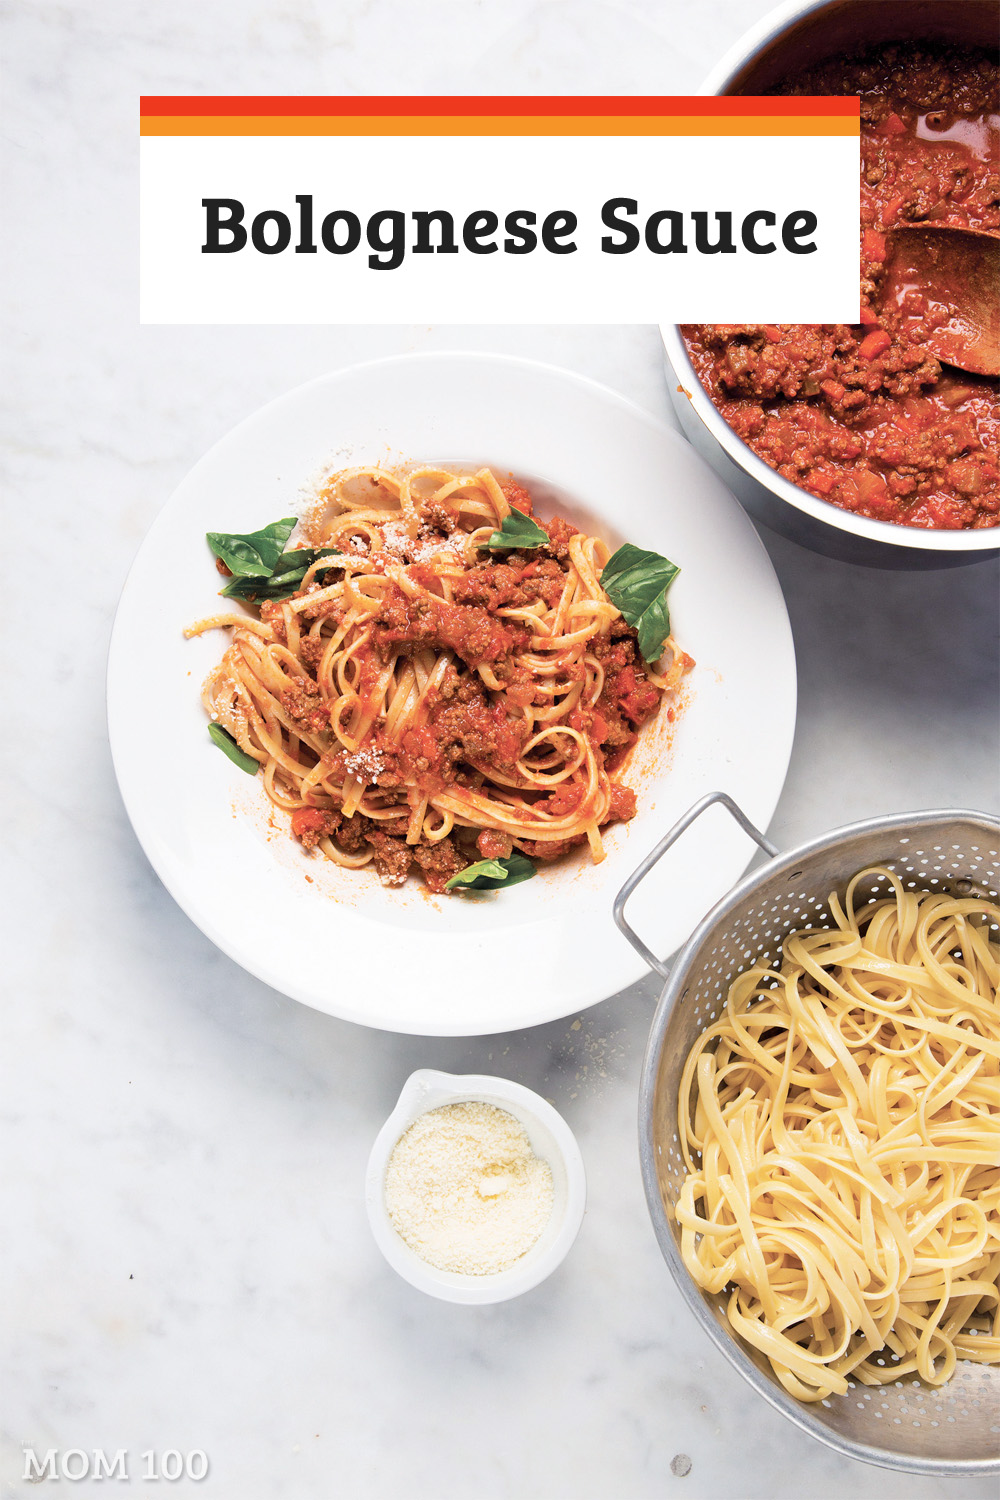 Traditional Bolognese usually involves a much longer cooking period but this Bolognese Sauce is a quick and easy weeknight version.